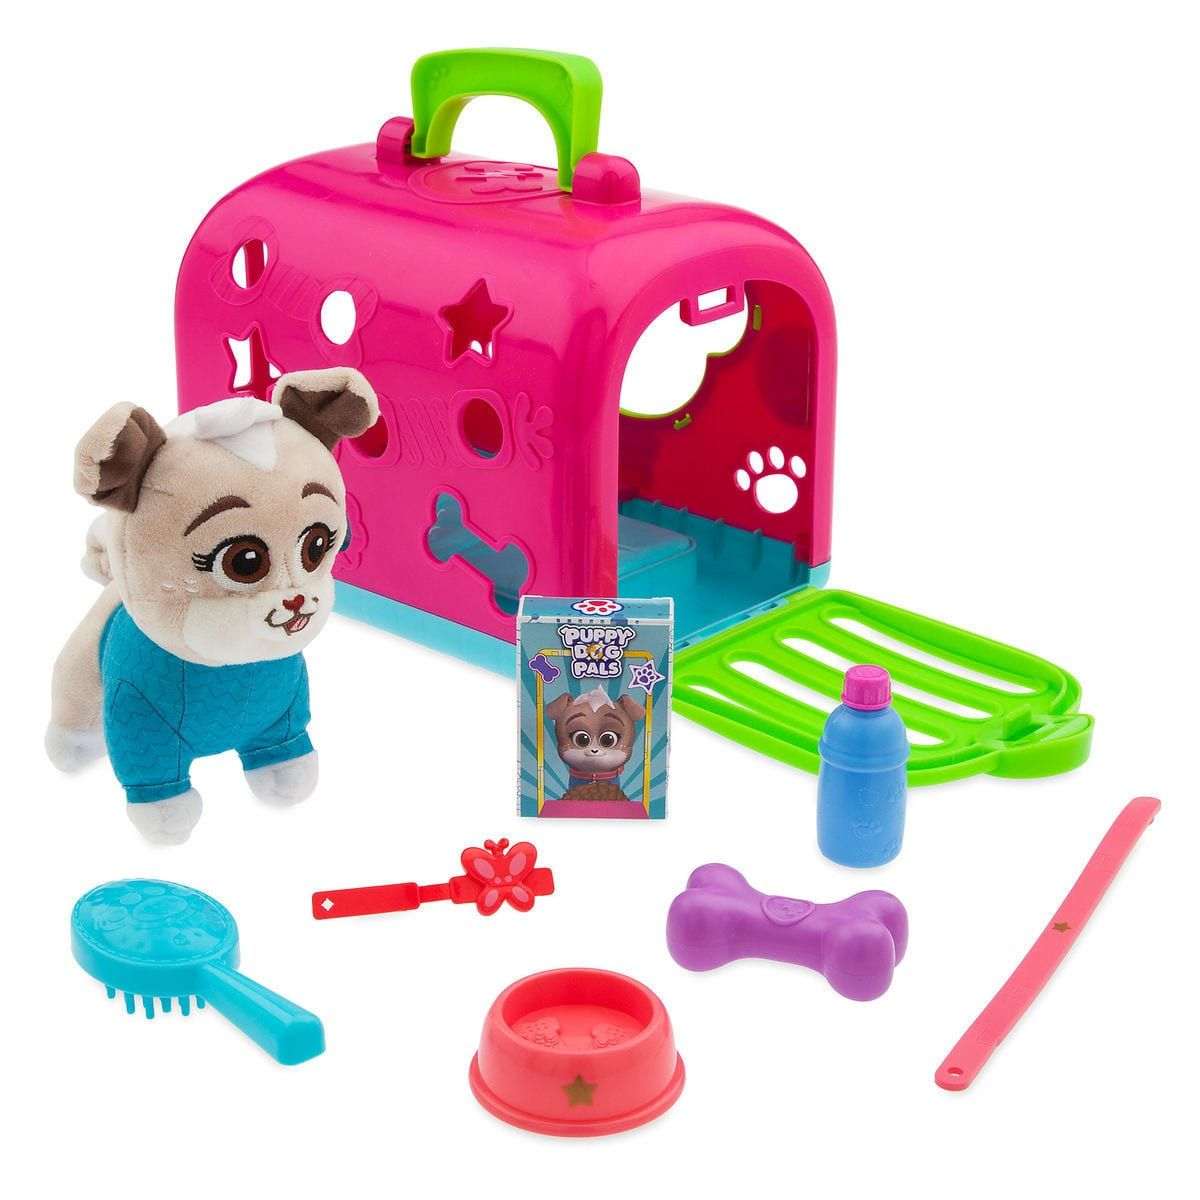 Keia Groom And Go Pet Carrier Play Set Puppy Dog Pals Little Girl Toys Minnie Mouse Toys Pet Carriers